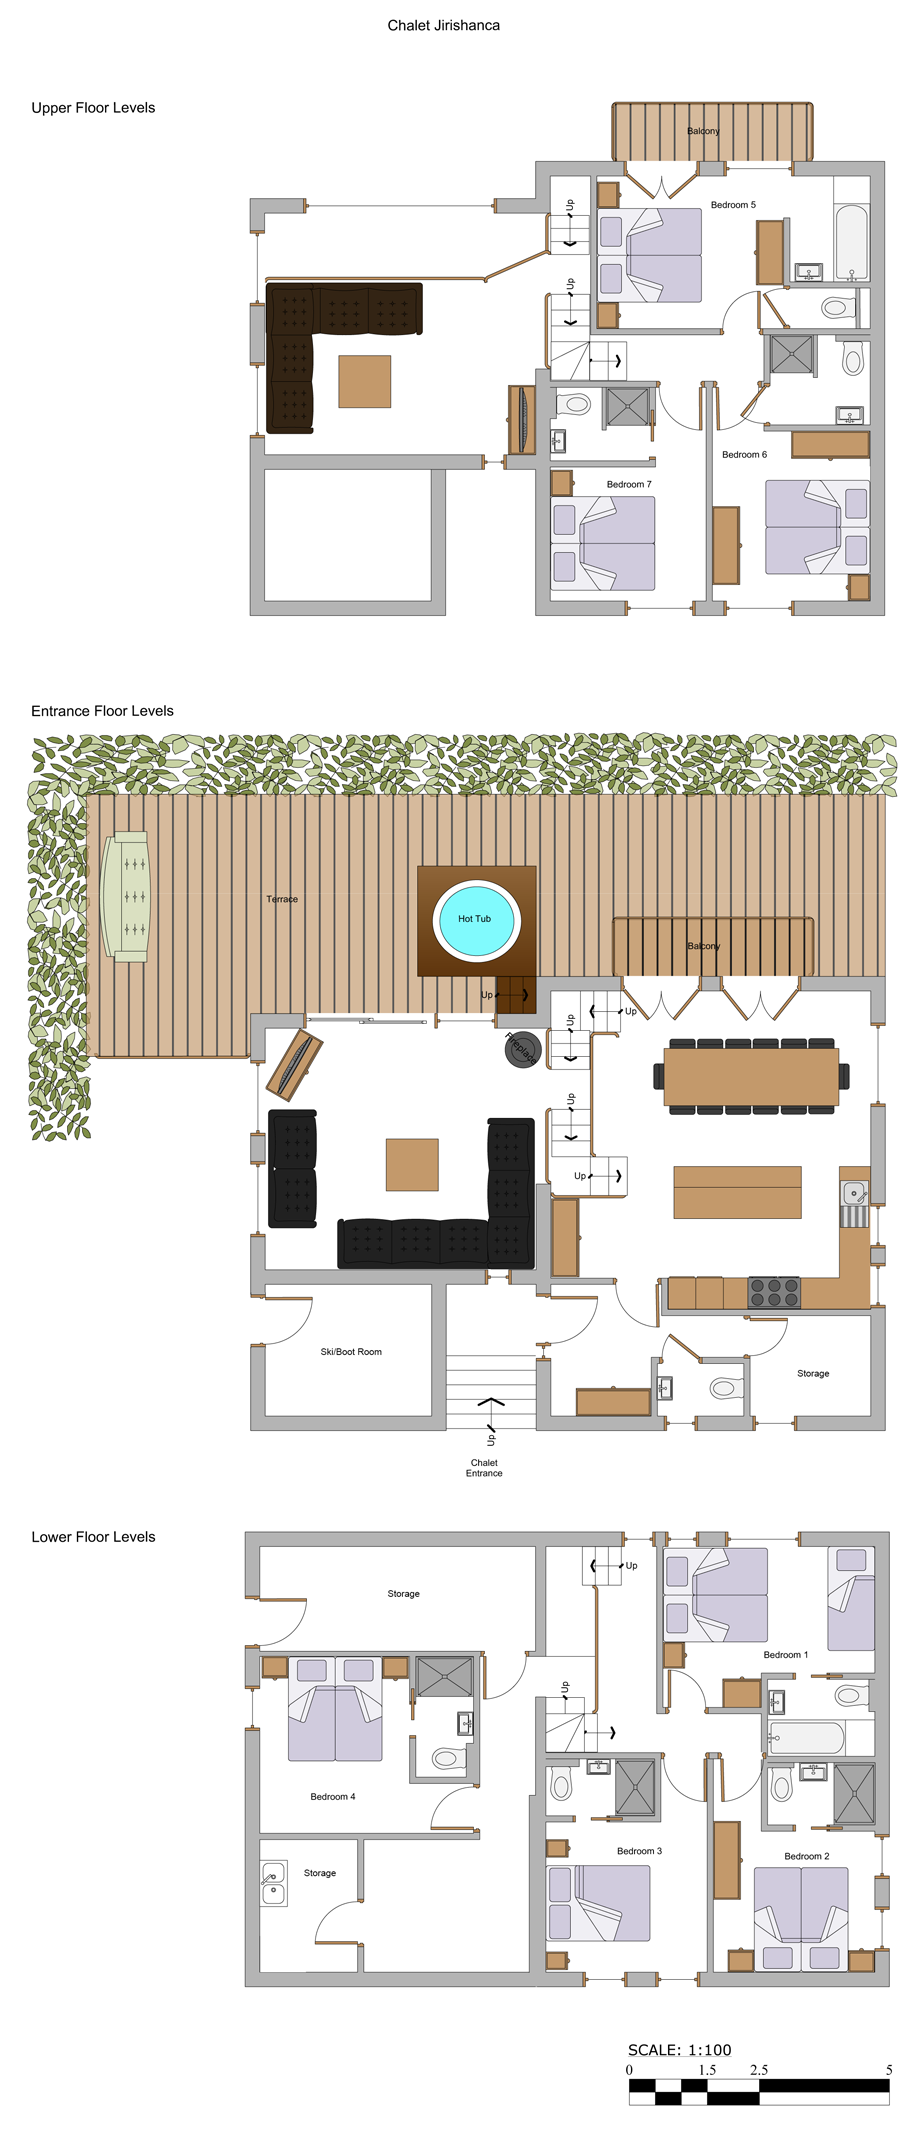 Chalet jirishanca luxury catered chalet morzine with hot tub for Mountain chalet plans